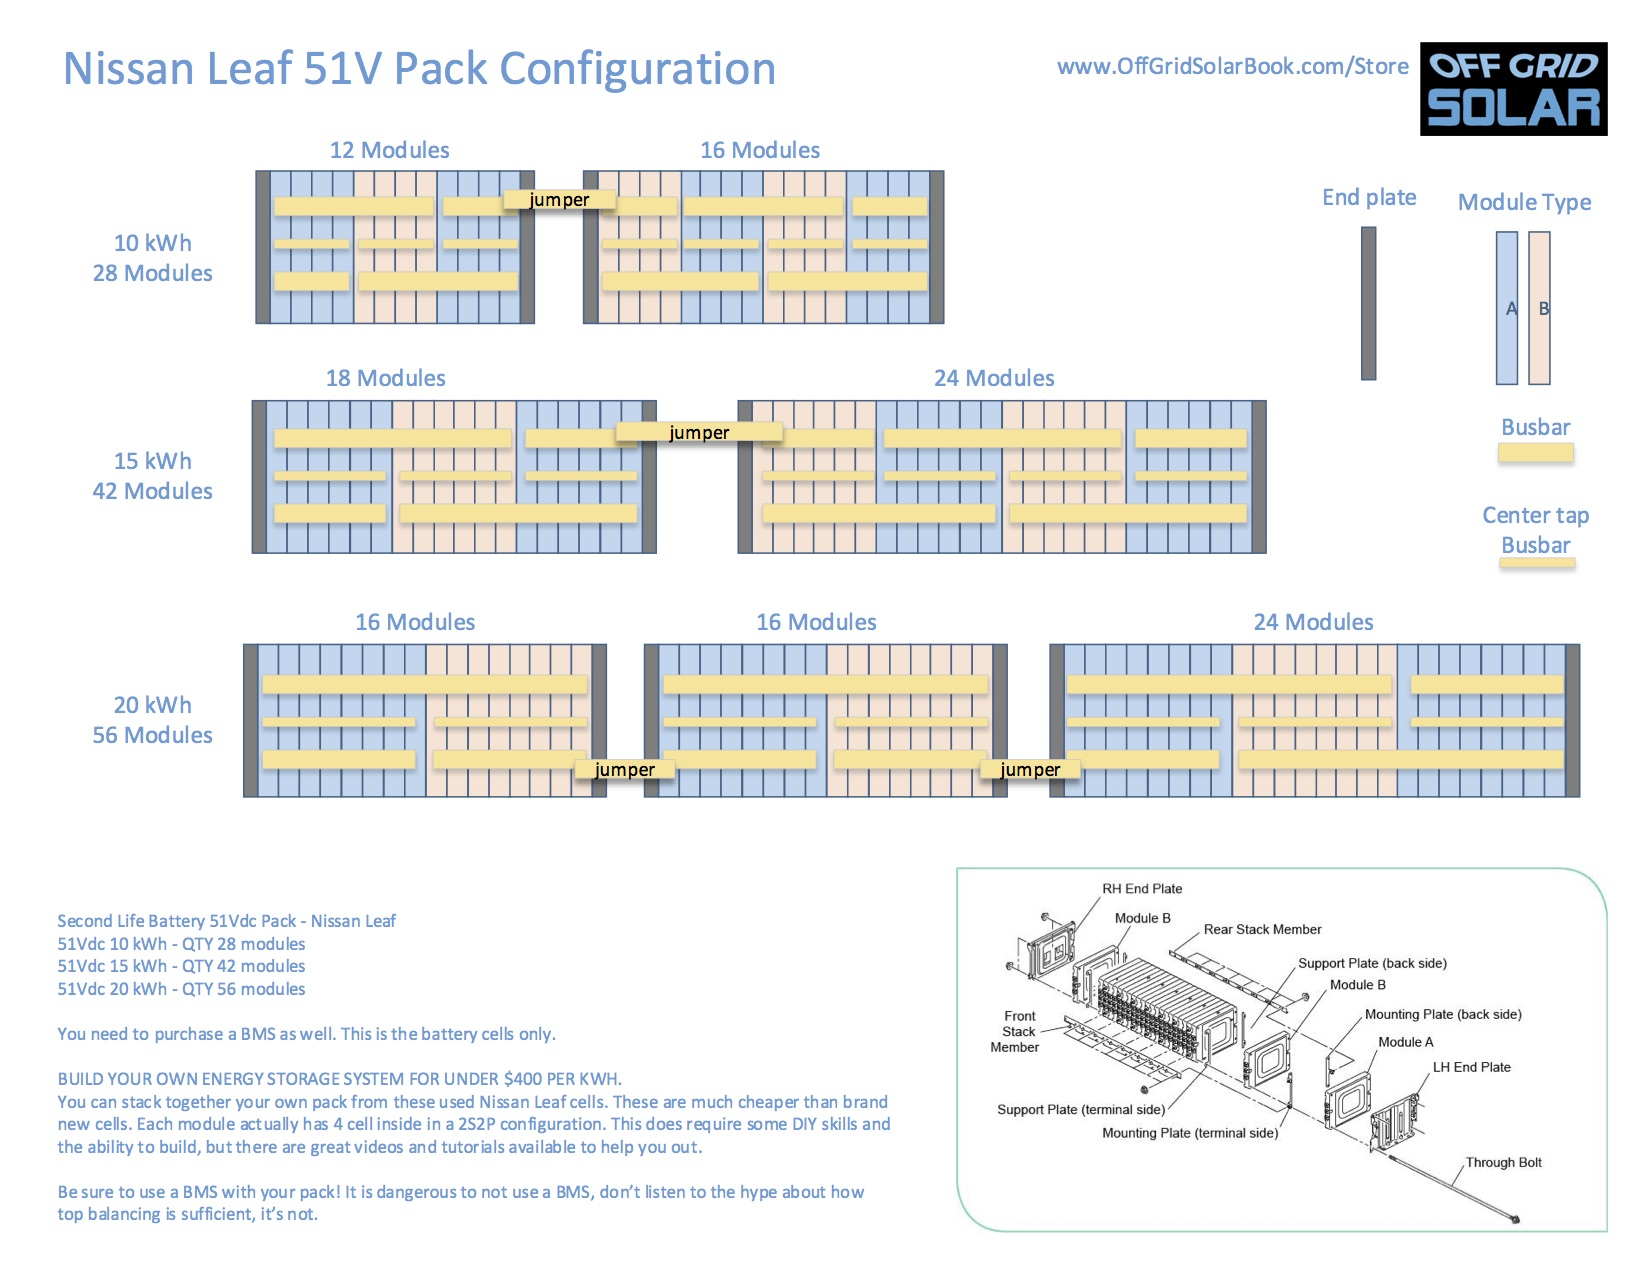 Instructions for building your Nissan Leaf pack